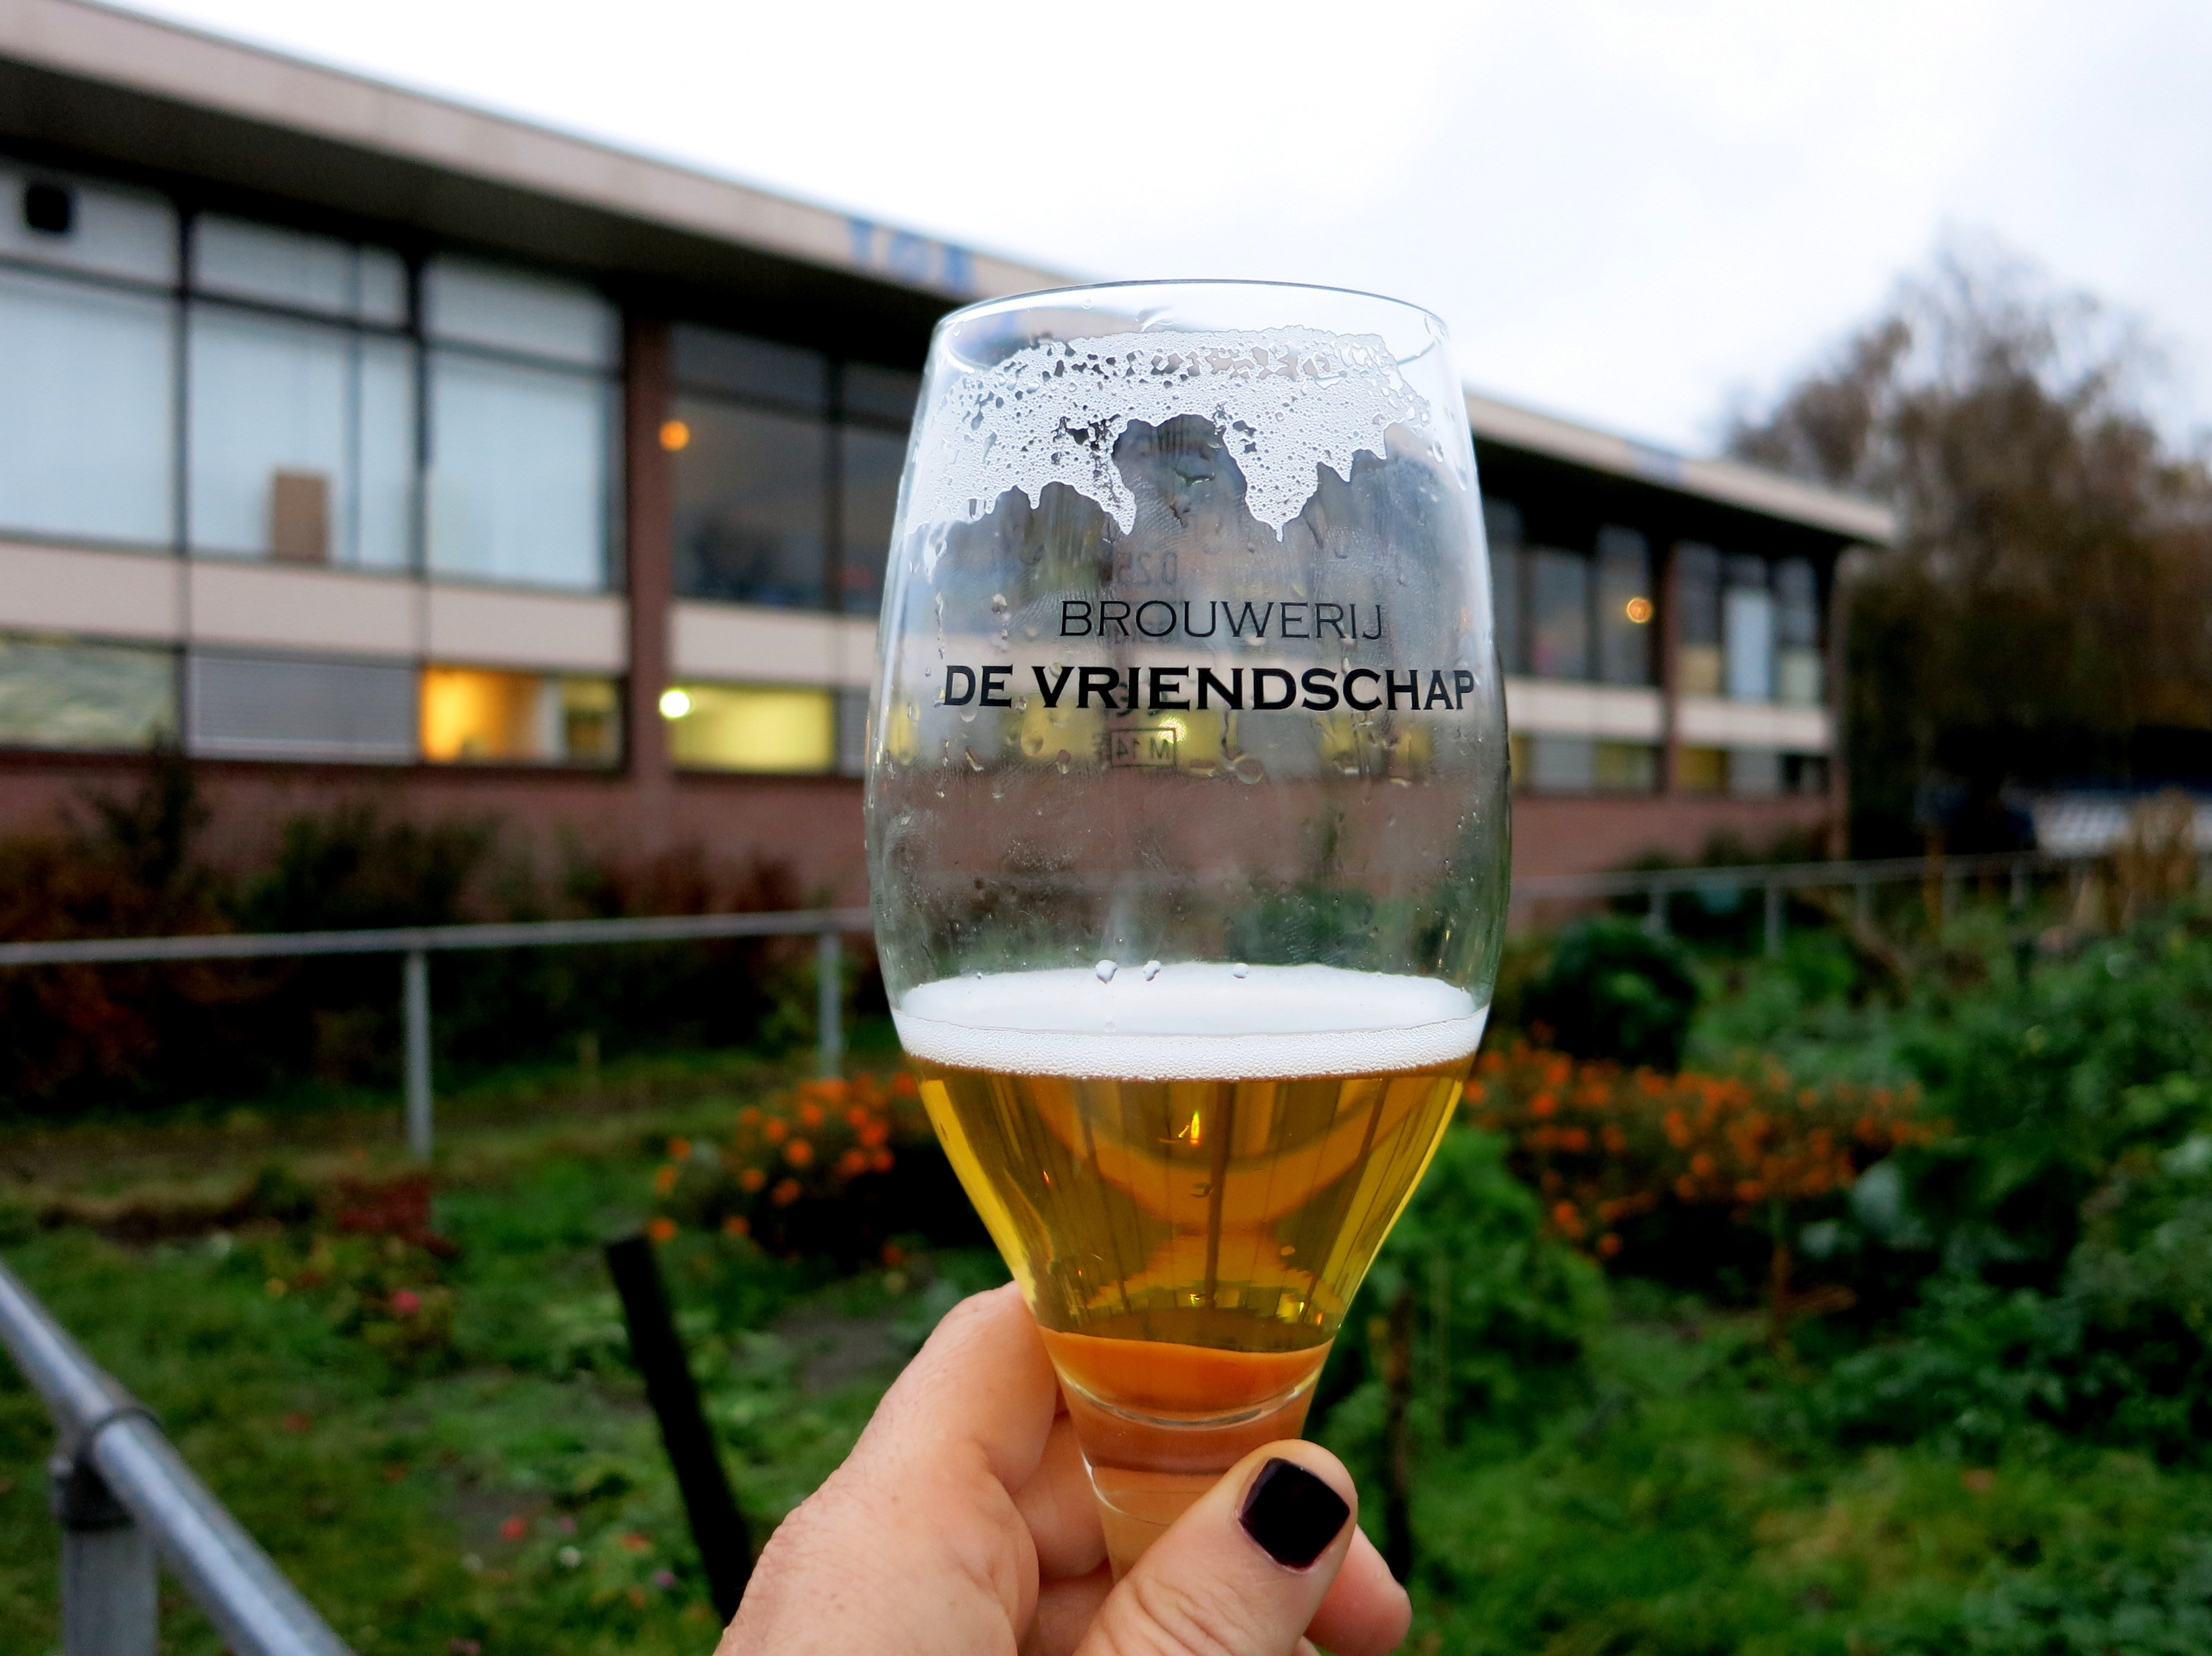 Thirsty for craft beer in Amsterdam? Here are 10 of our favorite local Amsterdam microbreweries! Brouwerij de Vriendschap awesomeamsterdam.com